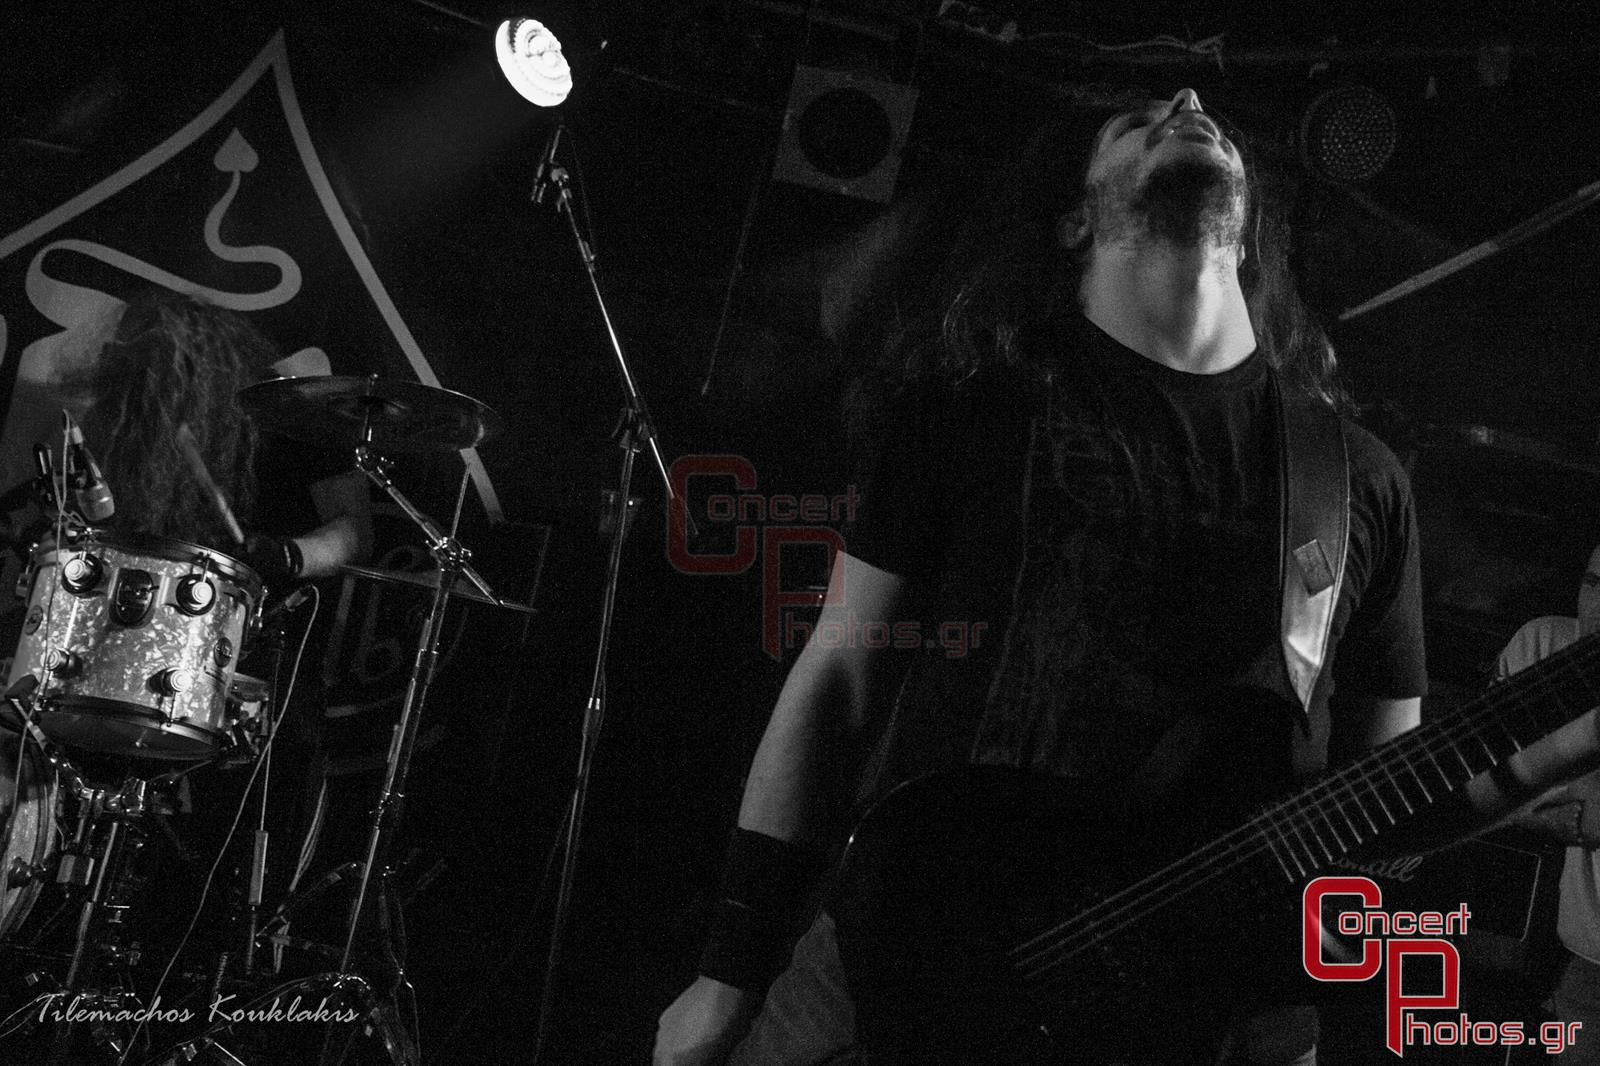 Nightstalker-Nightstalker AN Club photographer:  - concertphotos_-22